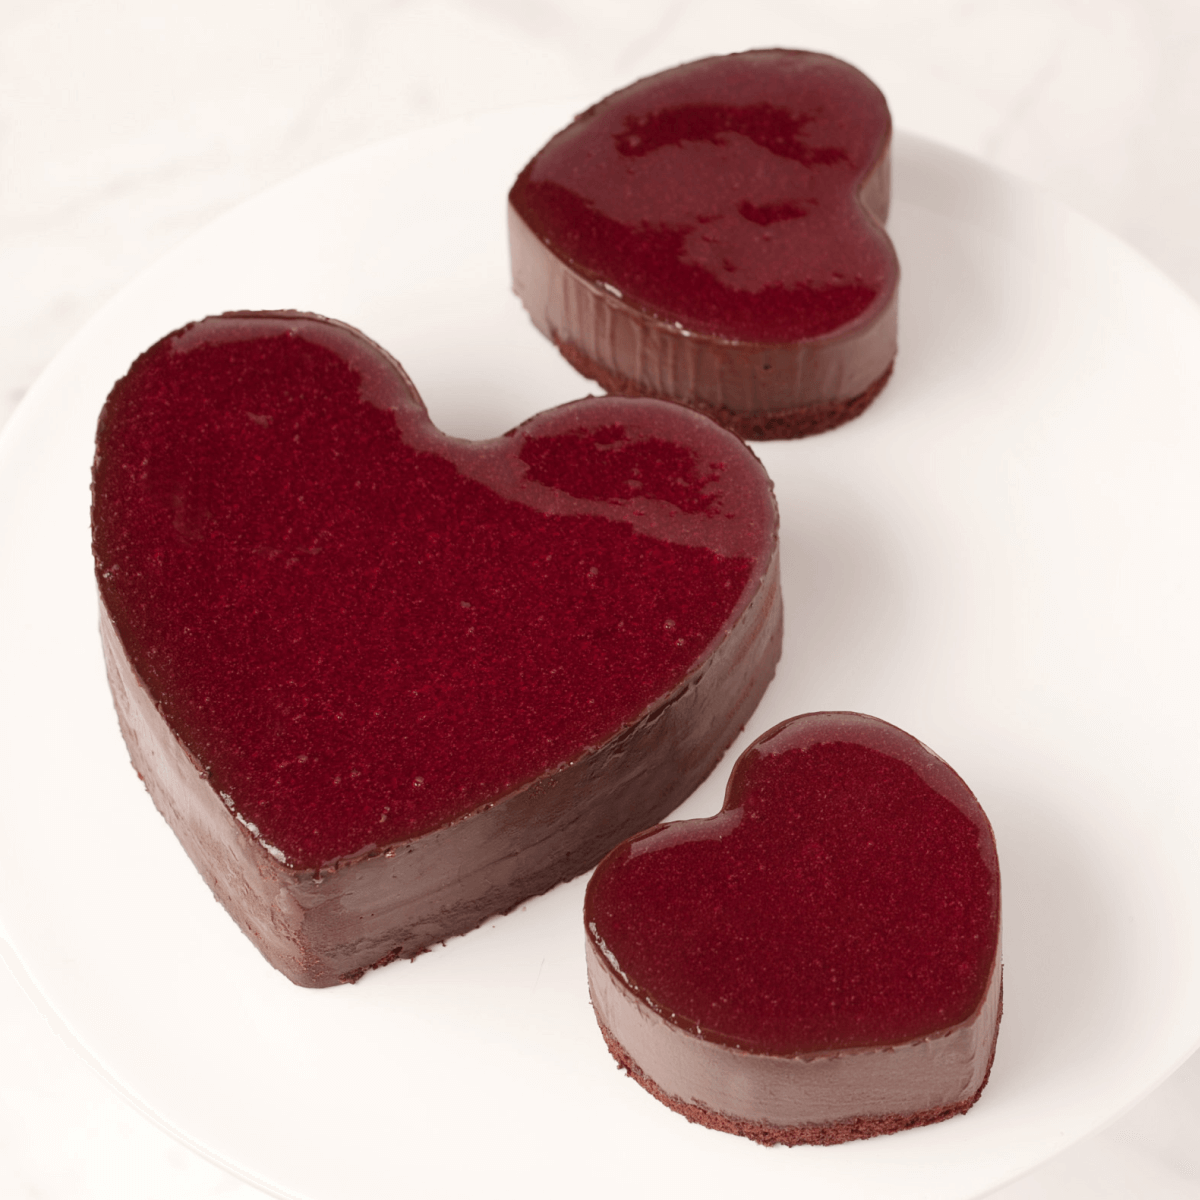 Lady M Heart-Shaped Cakes